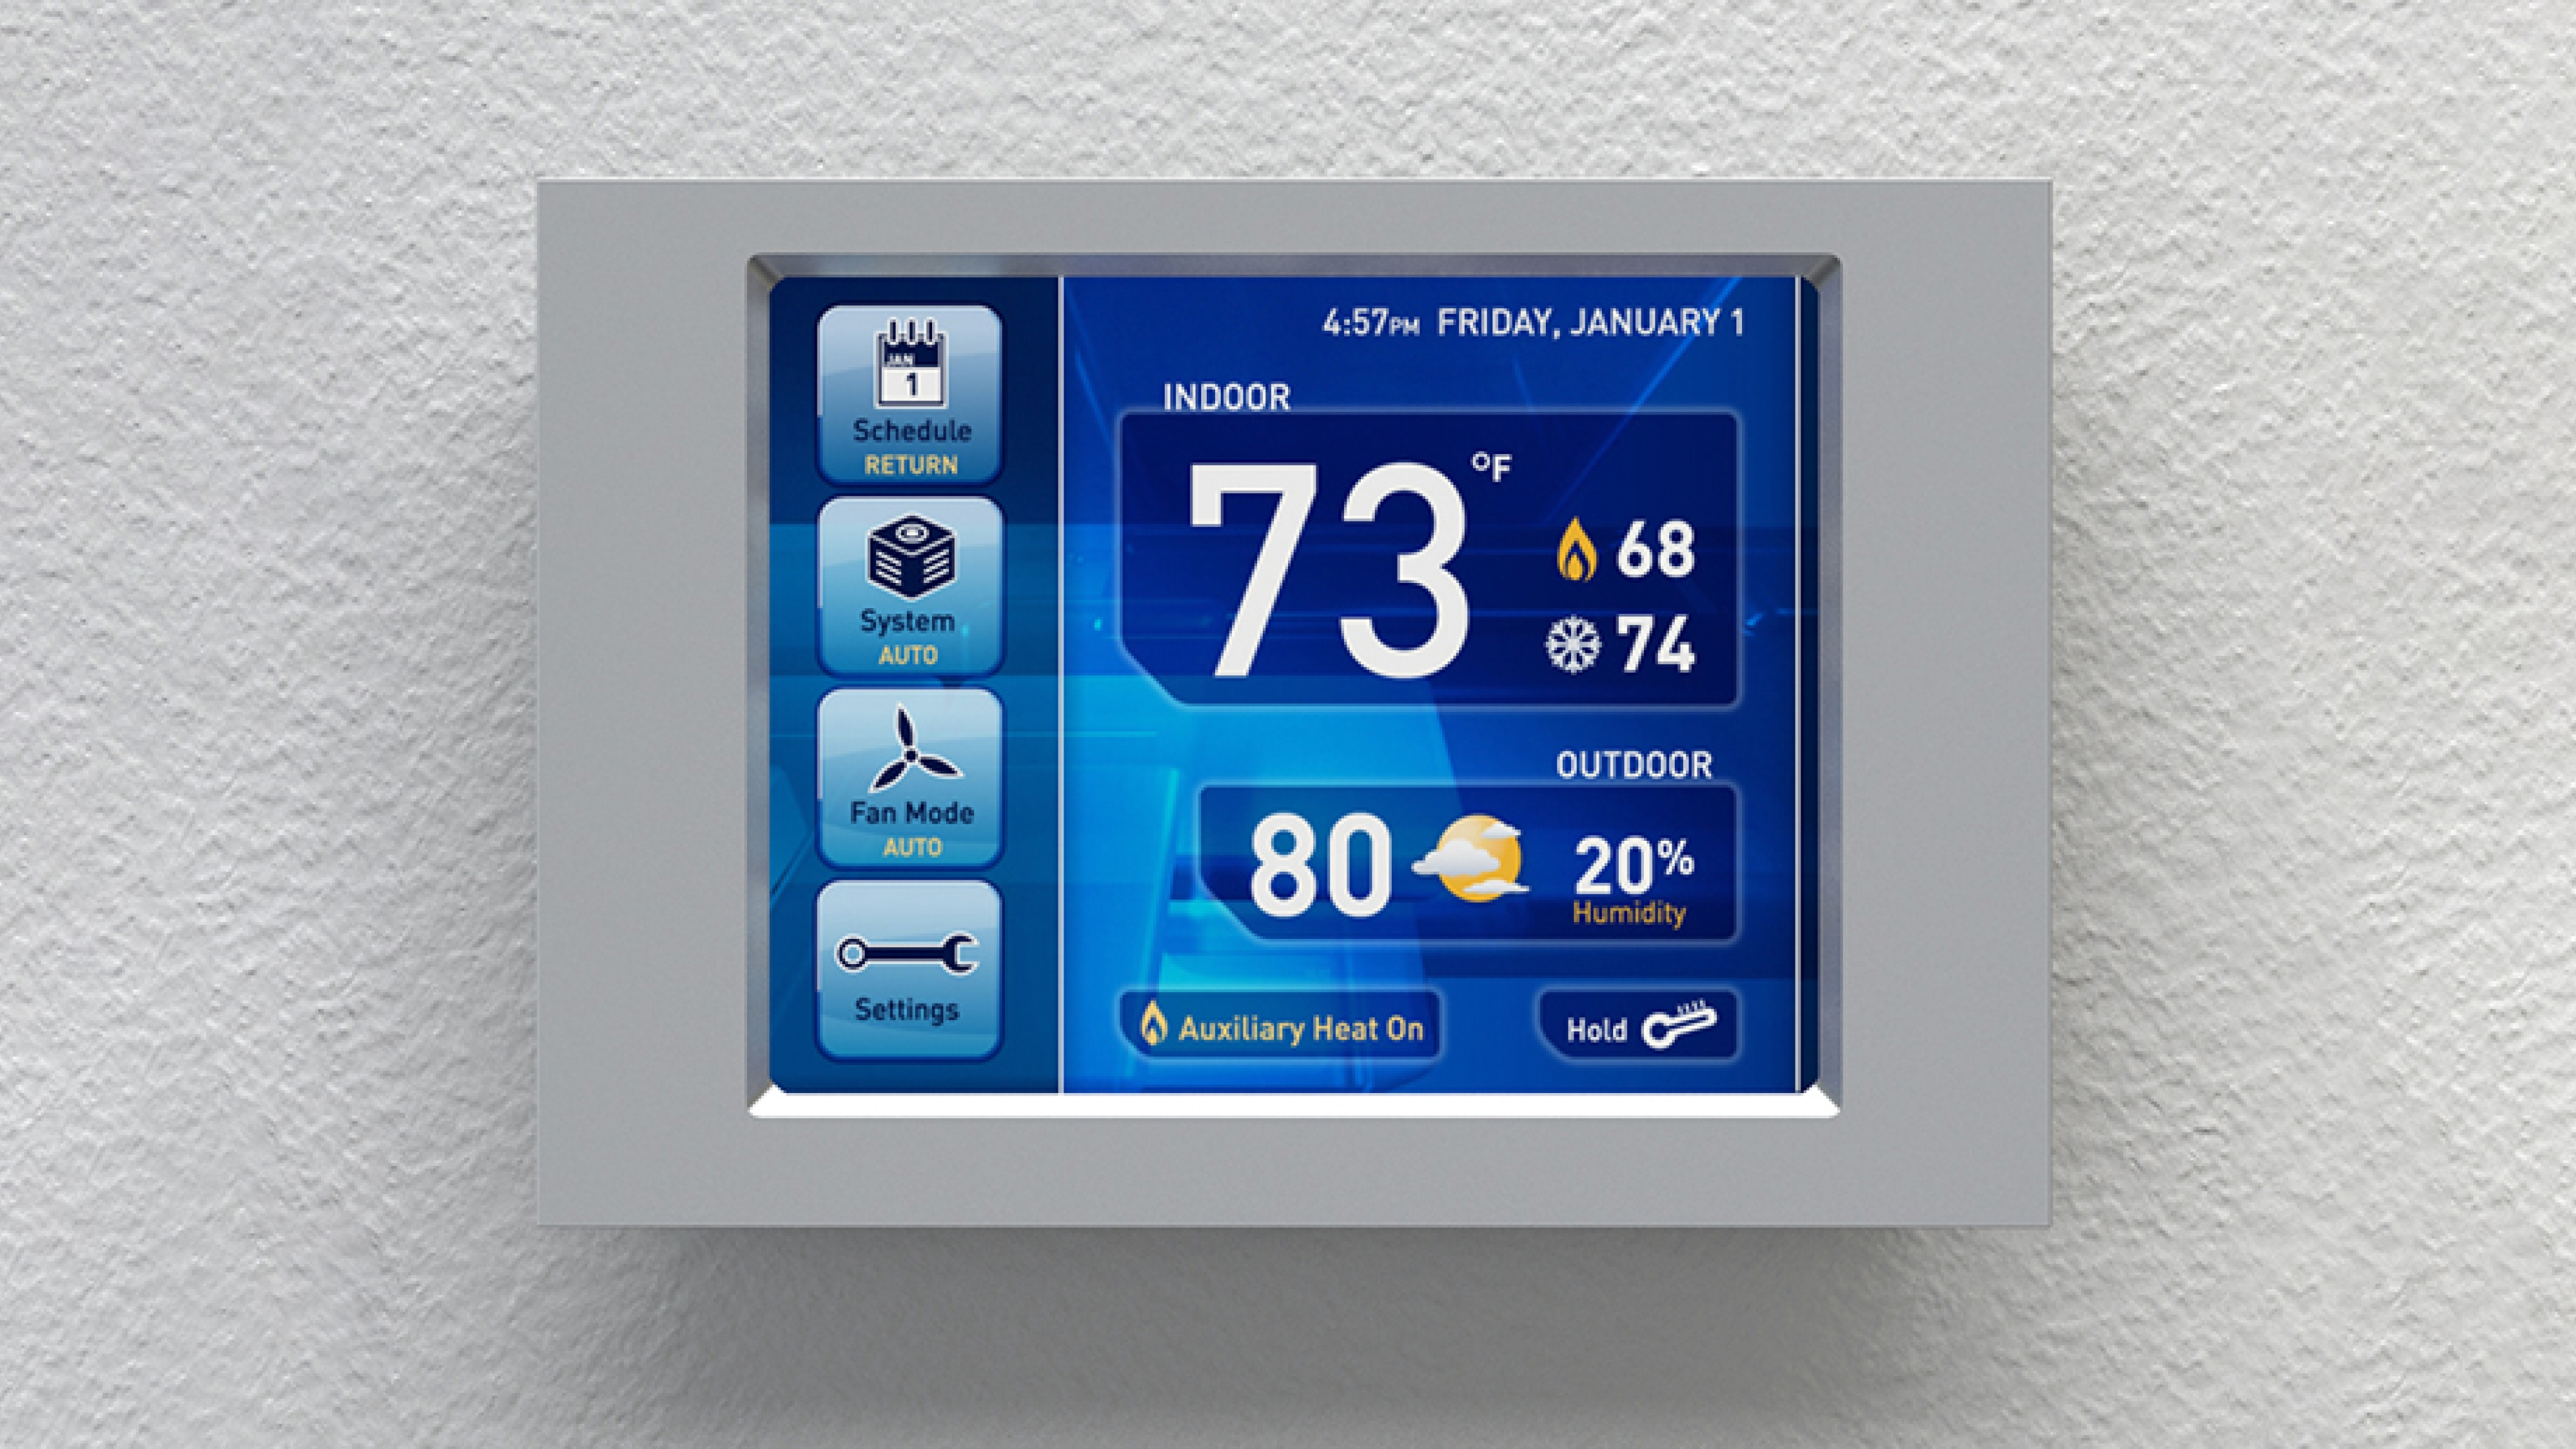 Parker Hannifin Touch Screen Thermostat Concept Screens | ROBRADY design